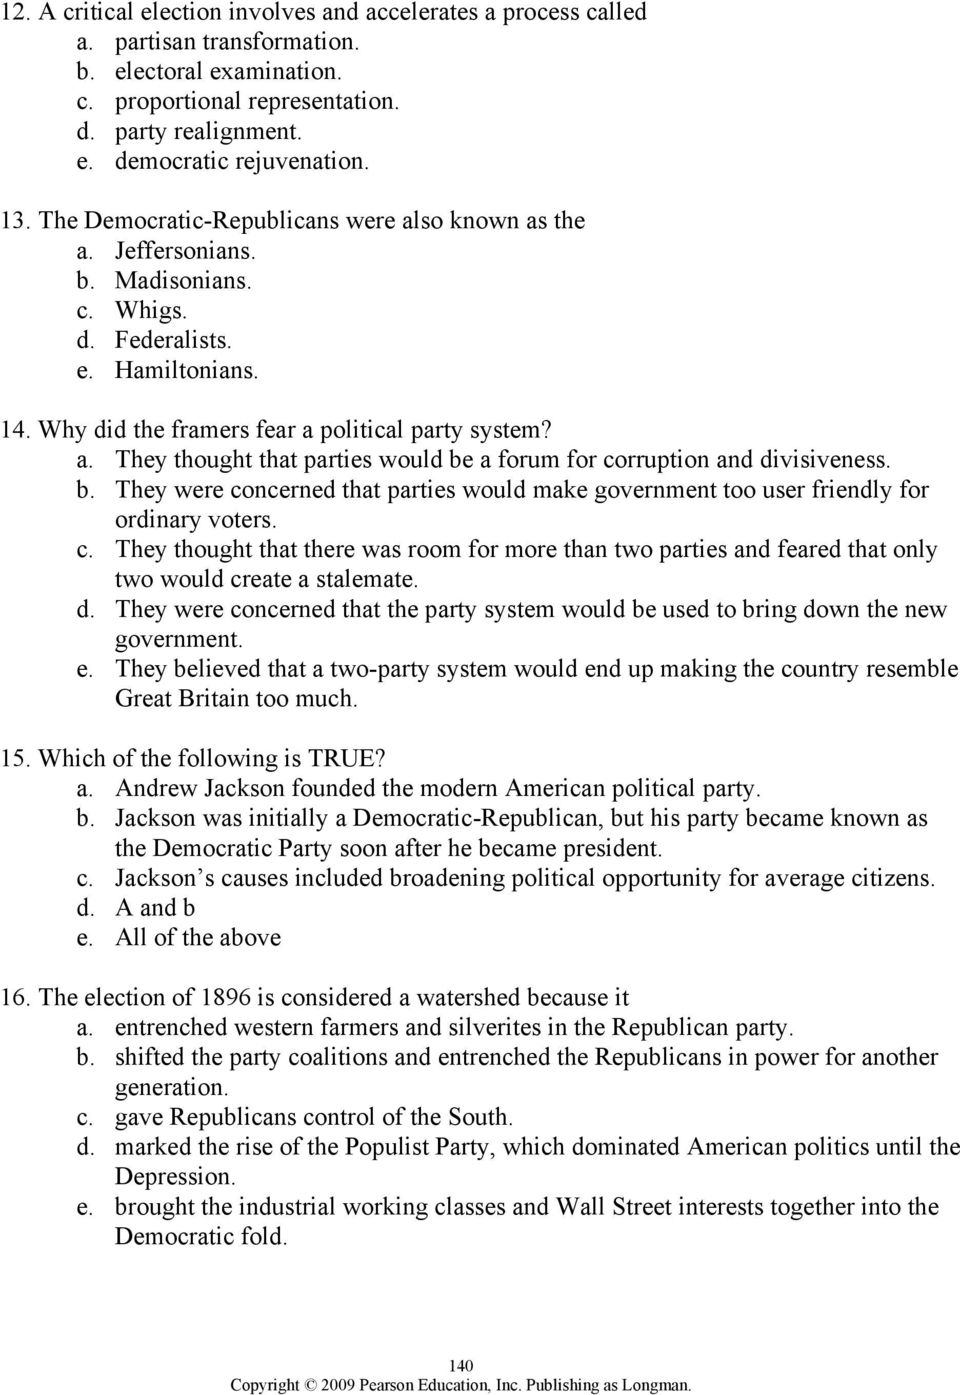 worksheet The Populist Movement The Value Of Third Parties Worksheet Answers chapter 8 political parties outline pdf they were concerned that would make government too user friendly for ordinary voters